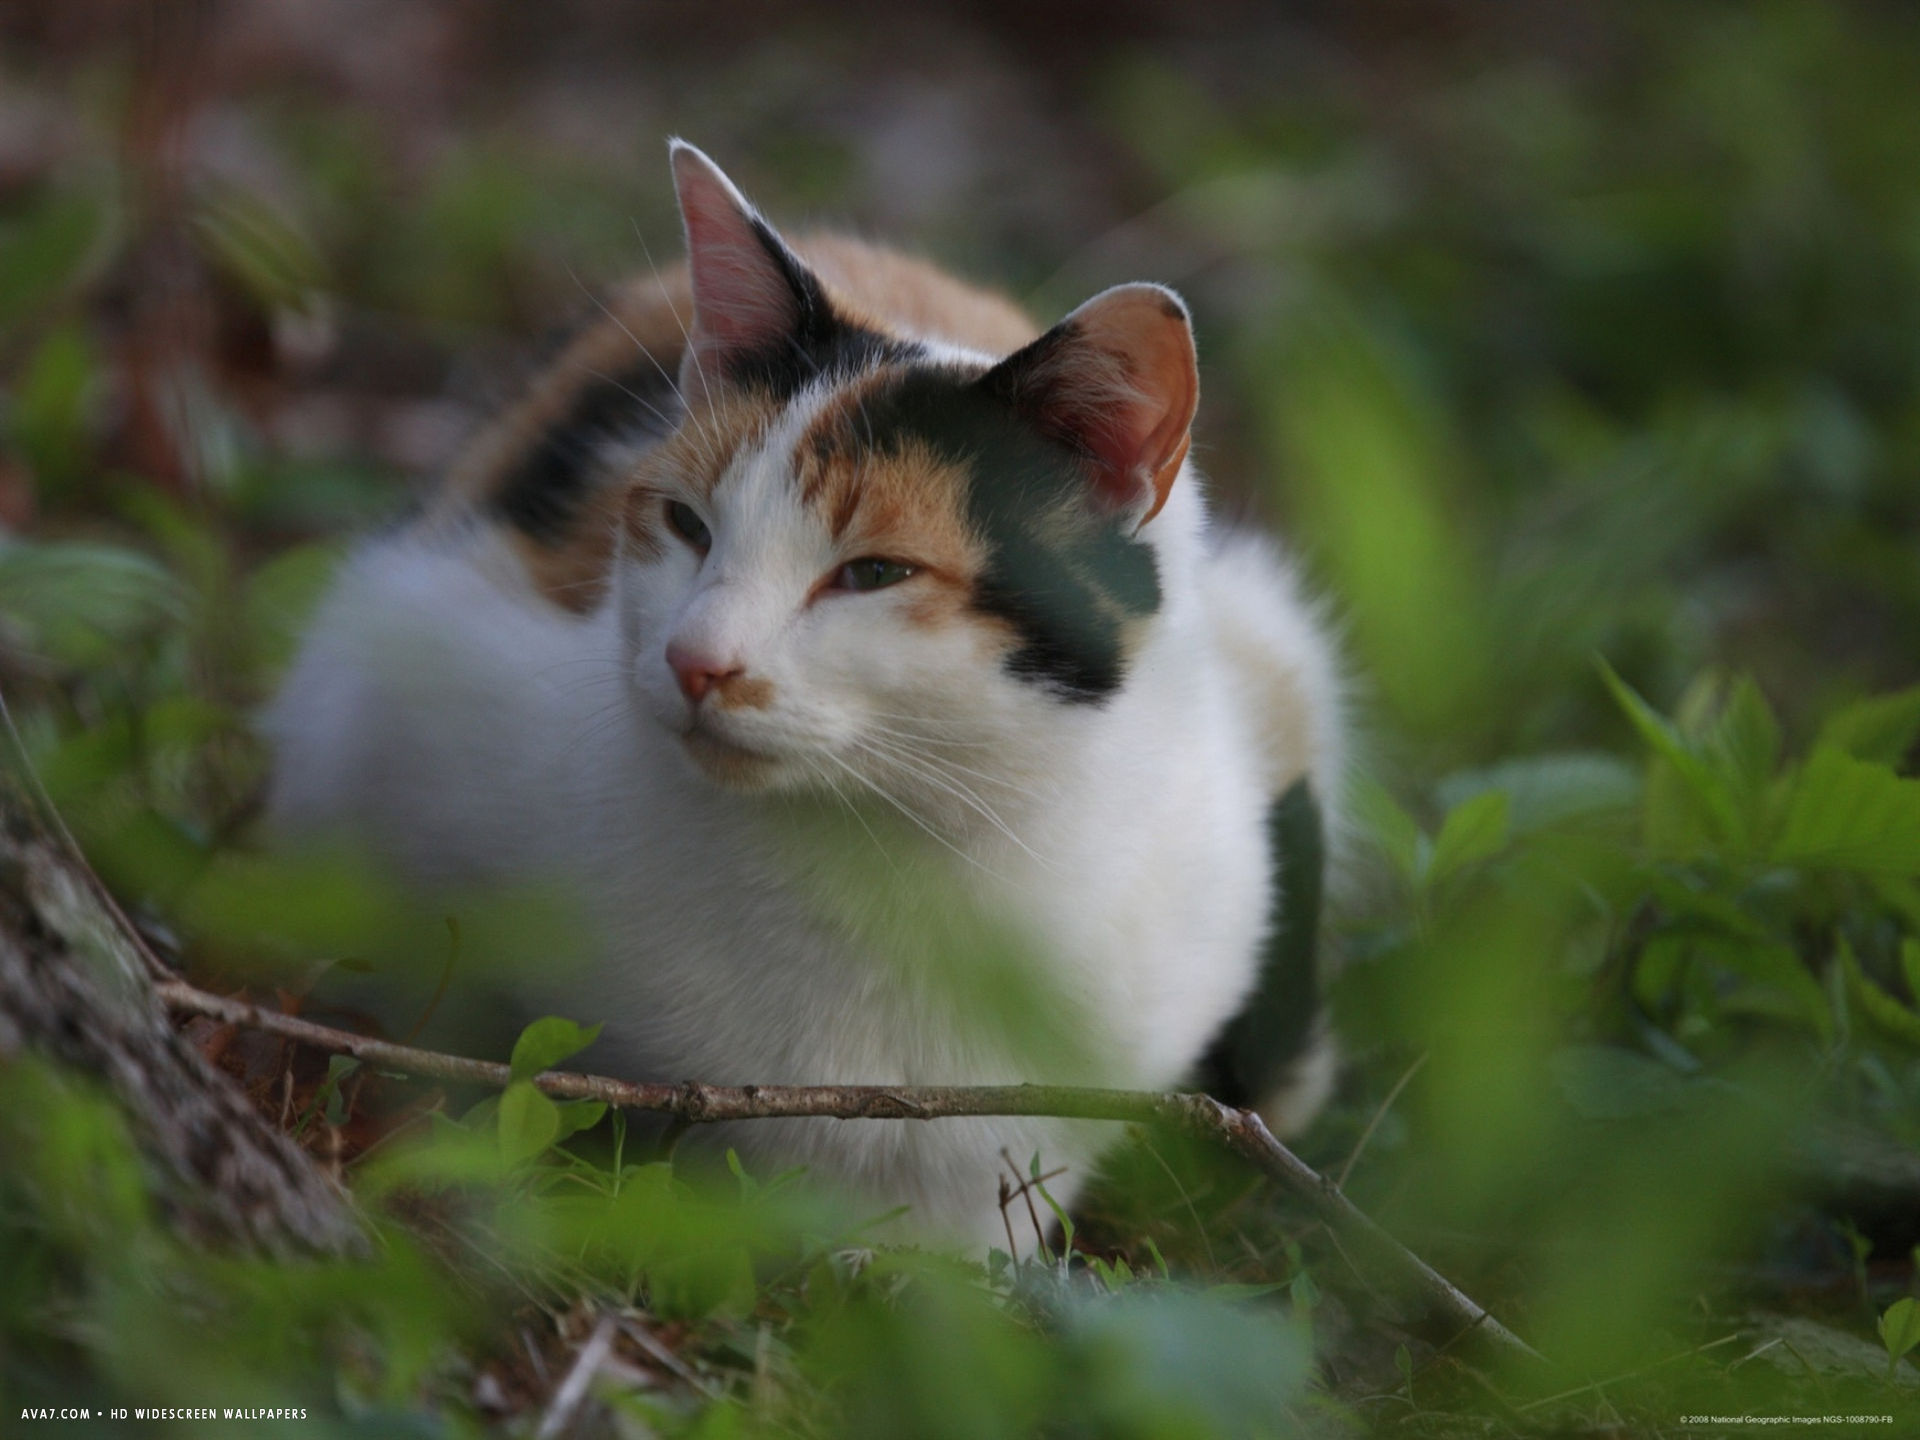 a cat sits in the grass